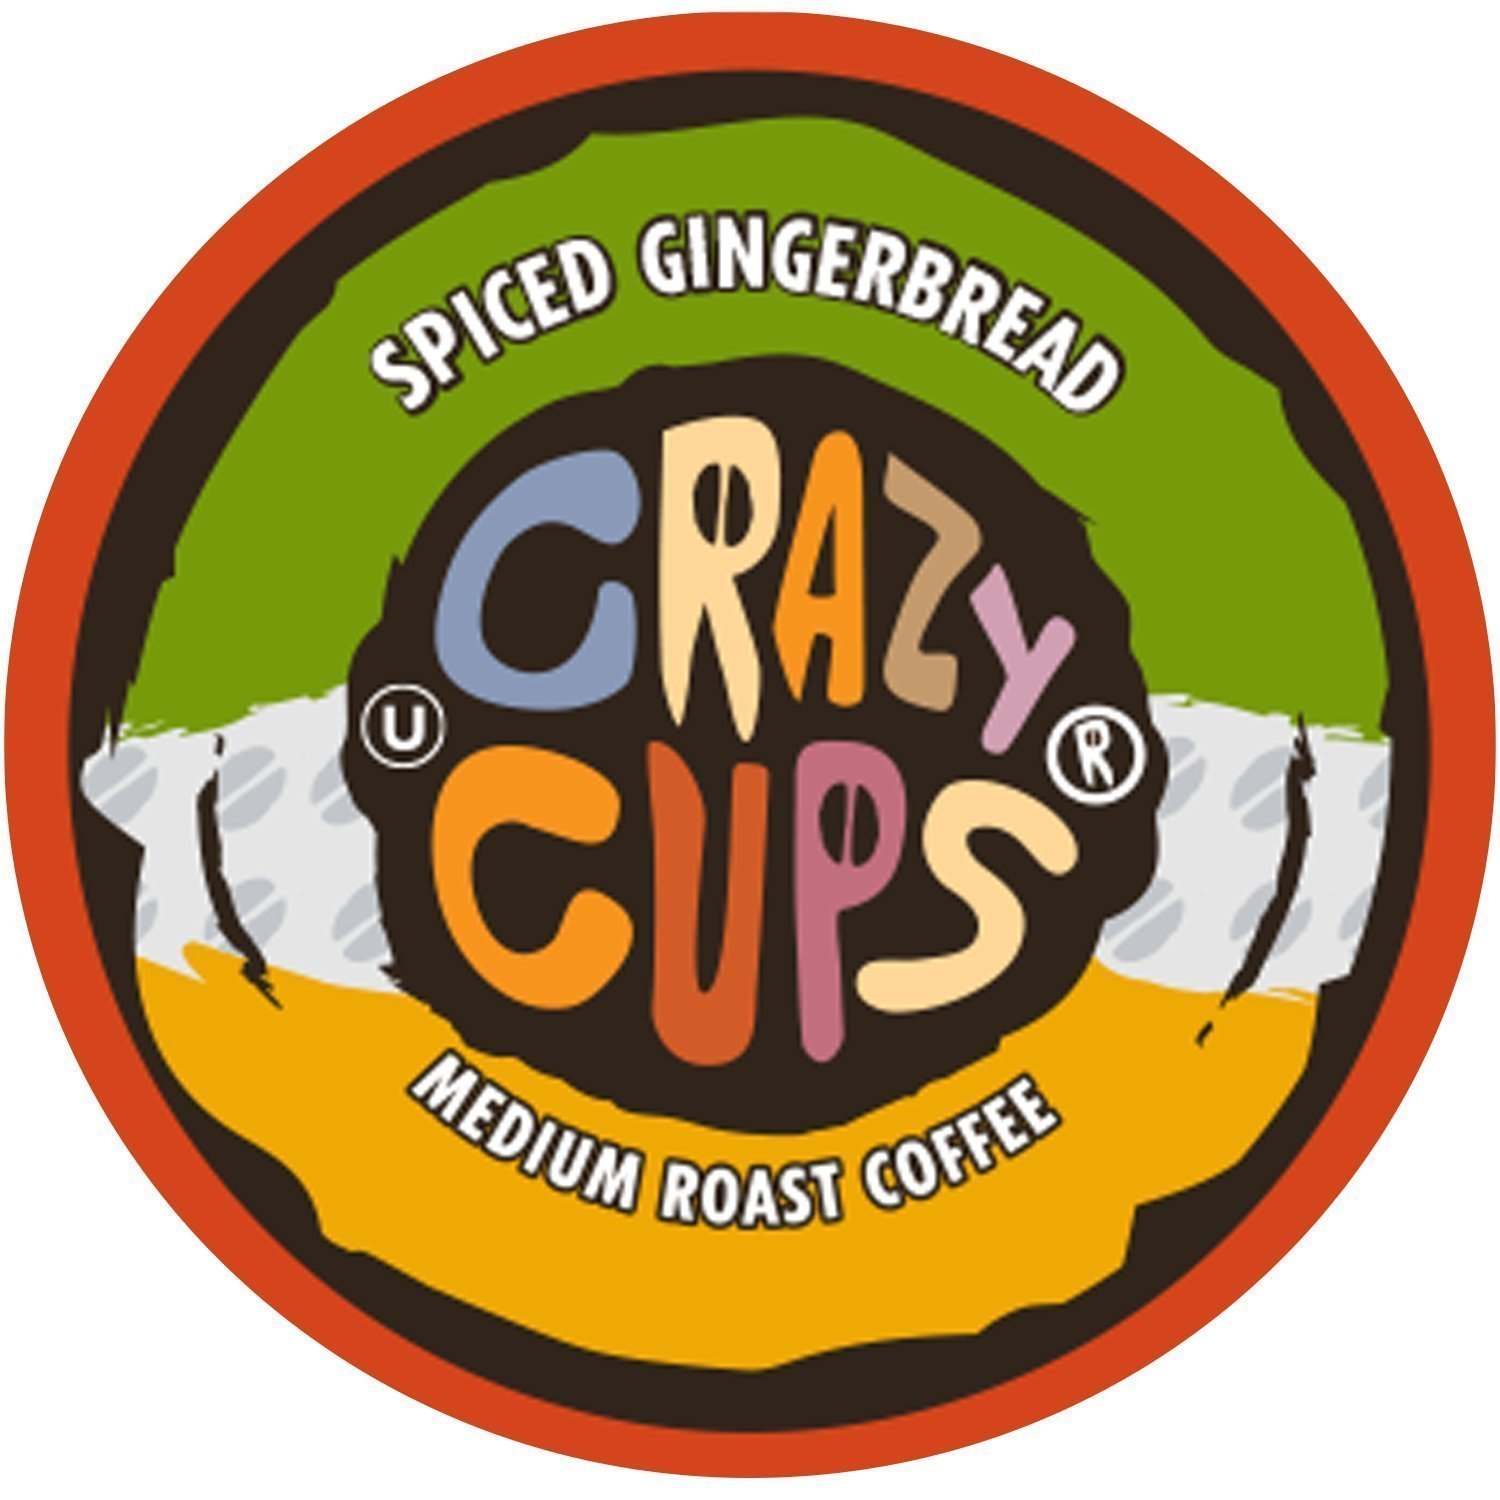 Crazy Cups Flavored Hot or Iced Coffee, for the Keurig K Cups 2.0 Brewers, Seasonal Spiced Gingerbread, 22 Count by Crazy Cups